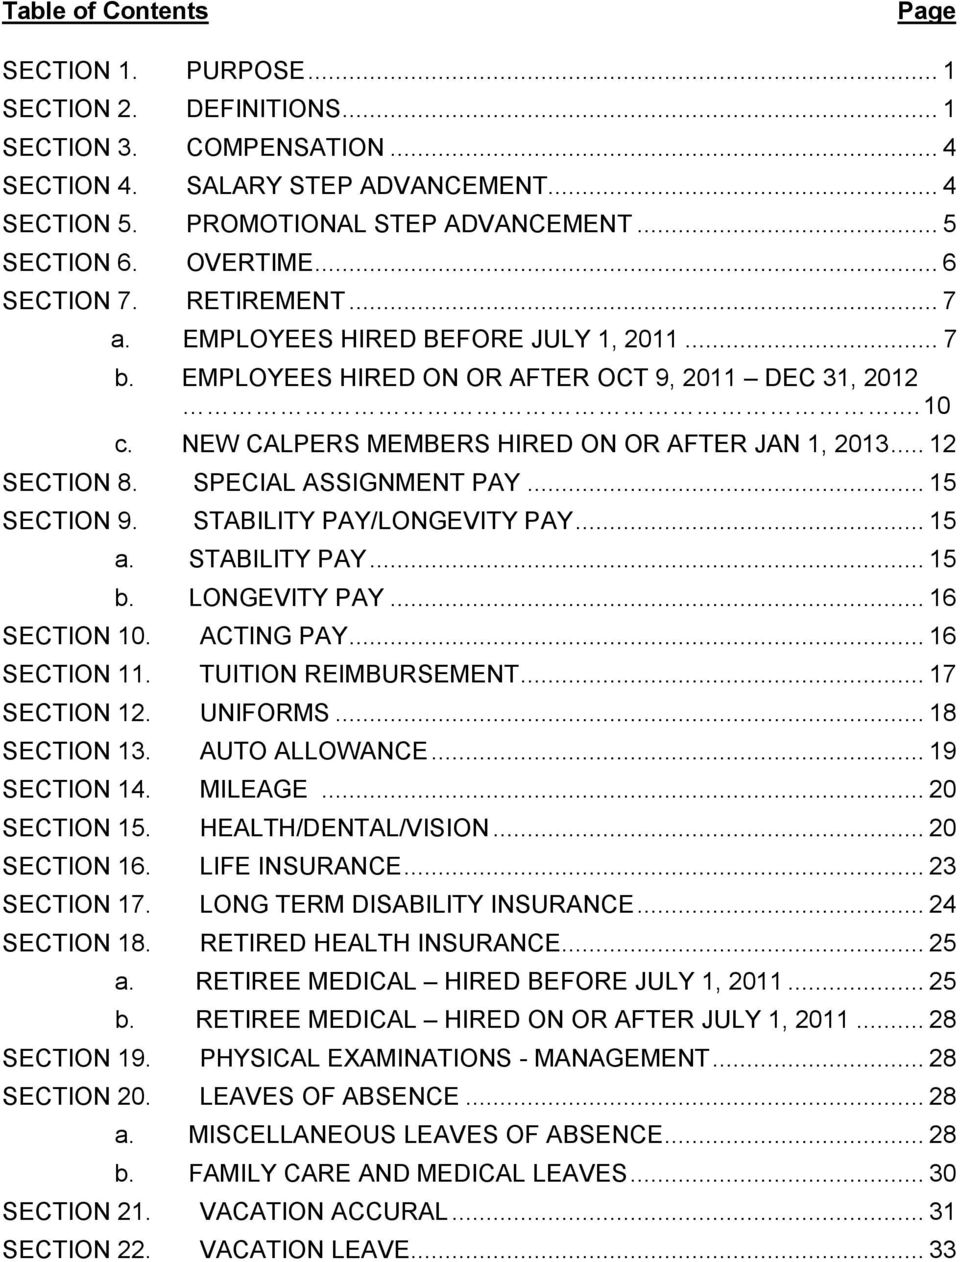 .. 12 SECTION 8. SPECIAL ASSIGNMENT PAY... 15 SECTION 9. STABILITY PAY/LONGEVITY PAY... 15 a. STABILITY PAY... 15 b. LONGEVITY PAY... 16 SECTION 10. ACTING PAY... 16 SECTION 11. TUITION REIMBURSEMENT.